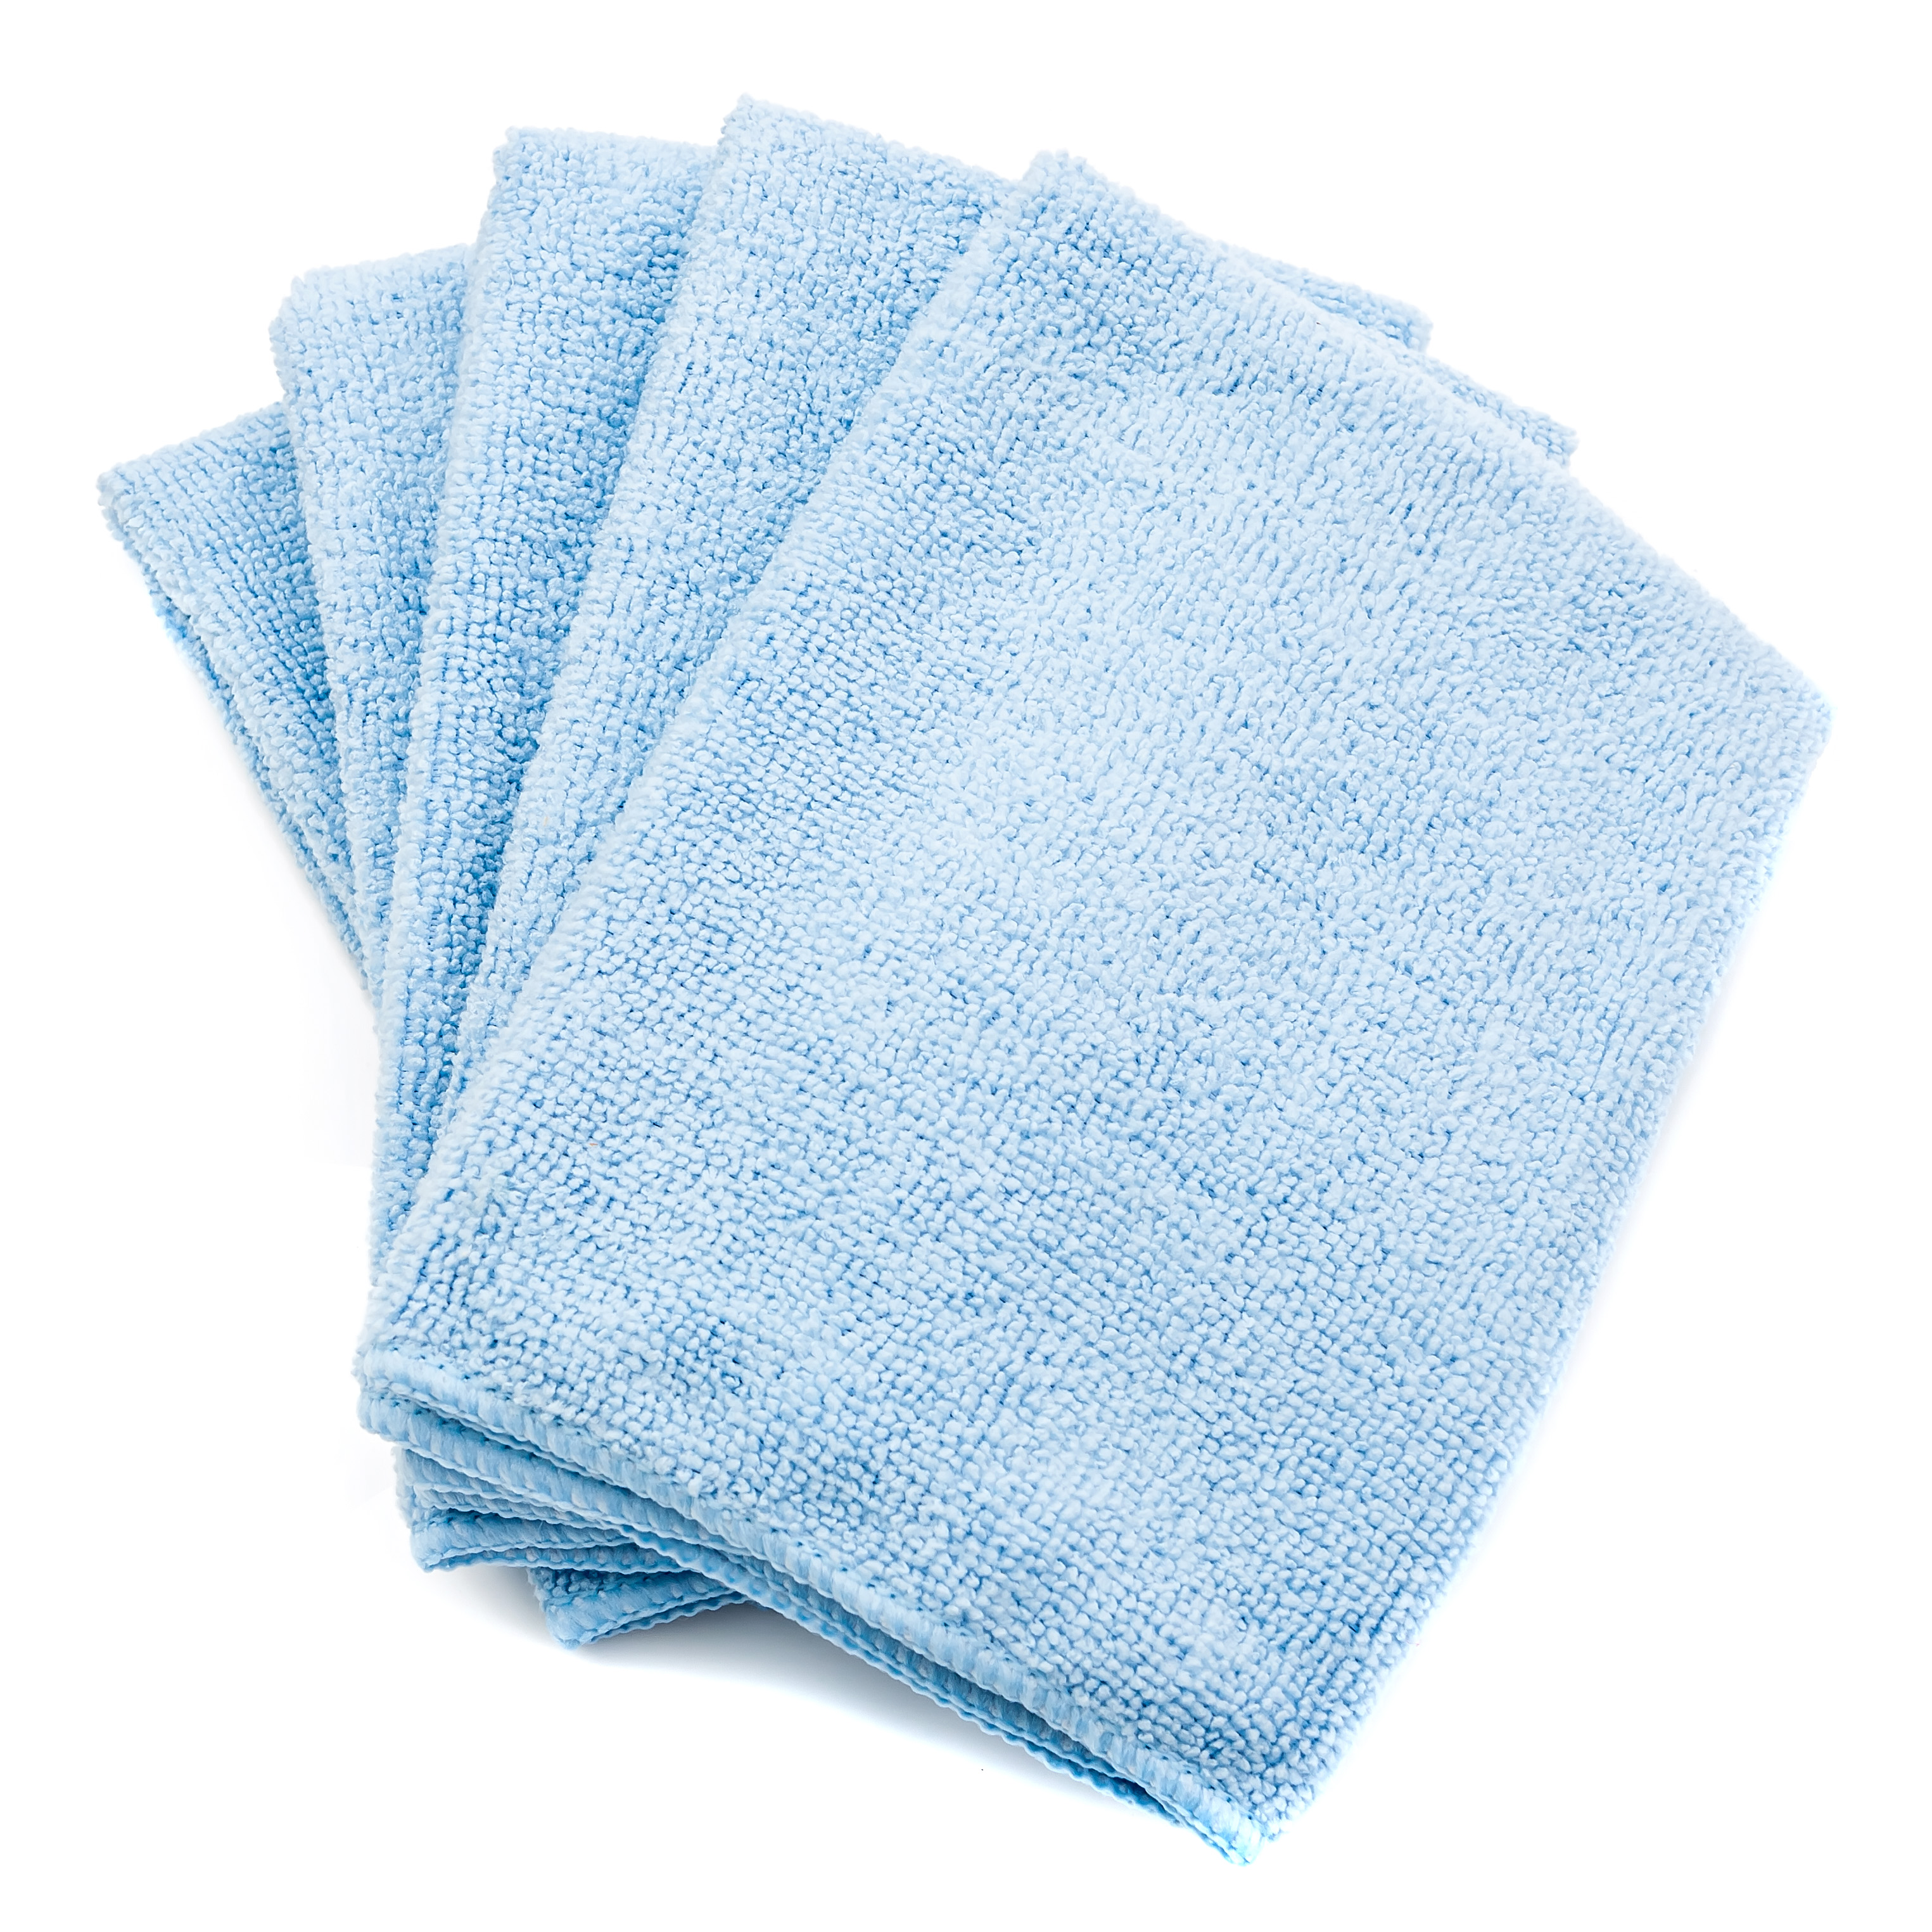 TiffsPixieDust: Microfiber Cleaning Towels (5 Pack) Review